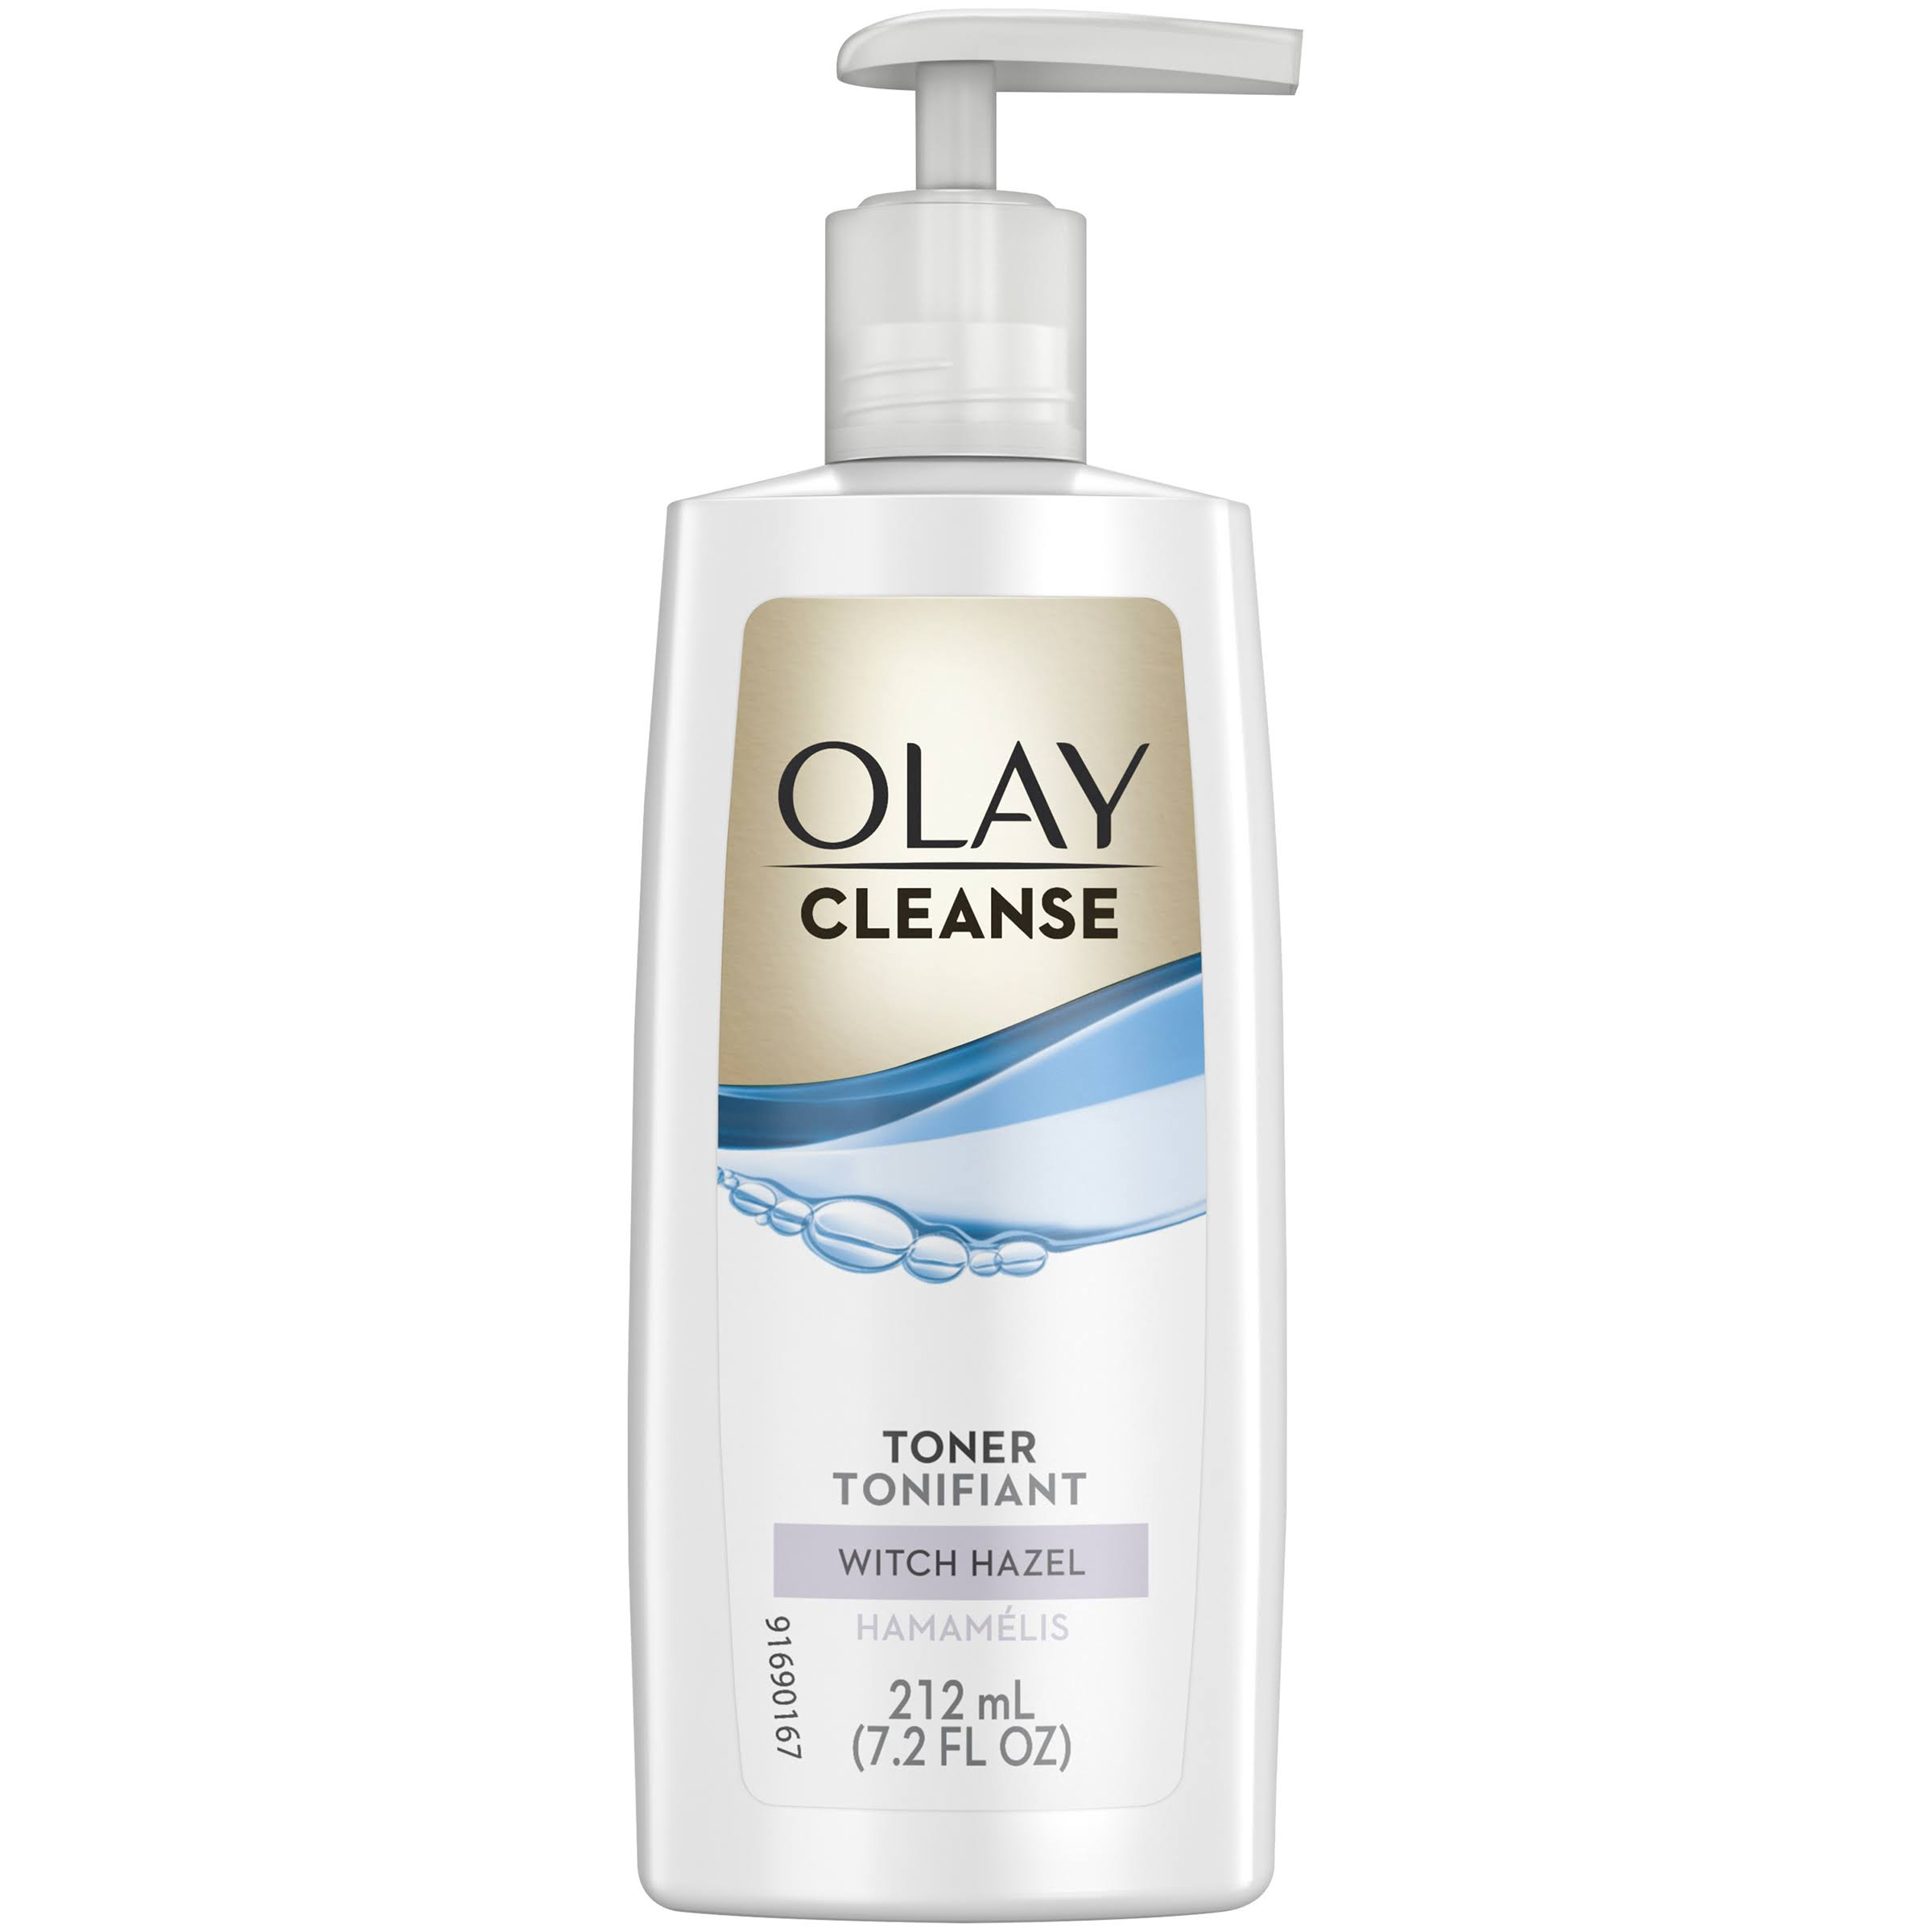 Olay Oil Minimizing Clean Toner - 7.2oz